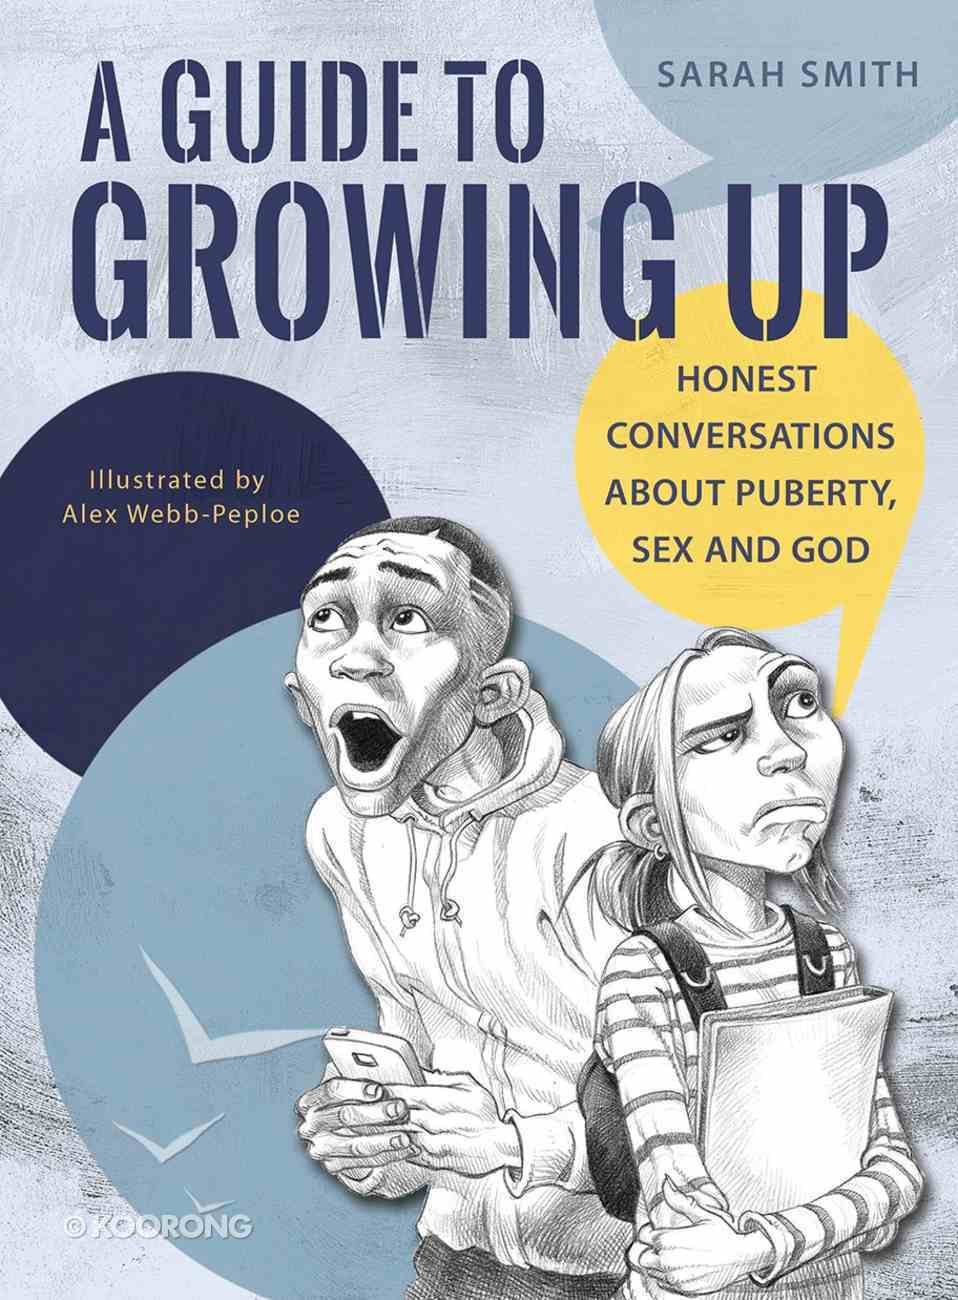 A Guide to Growing Up: Honest Conversations About Puberty, Sex and God eBook